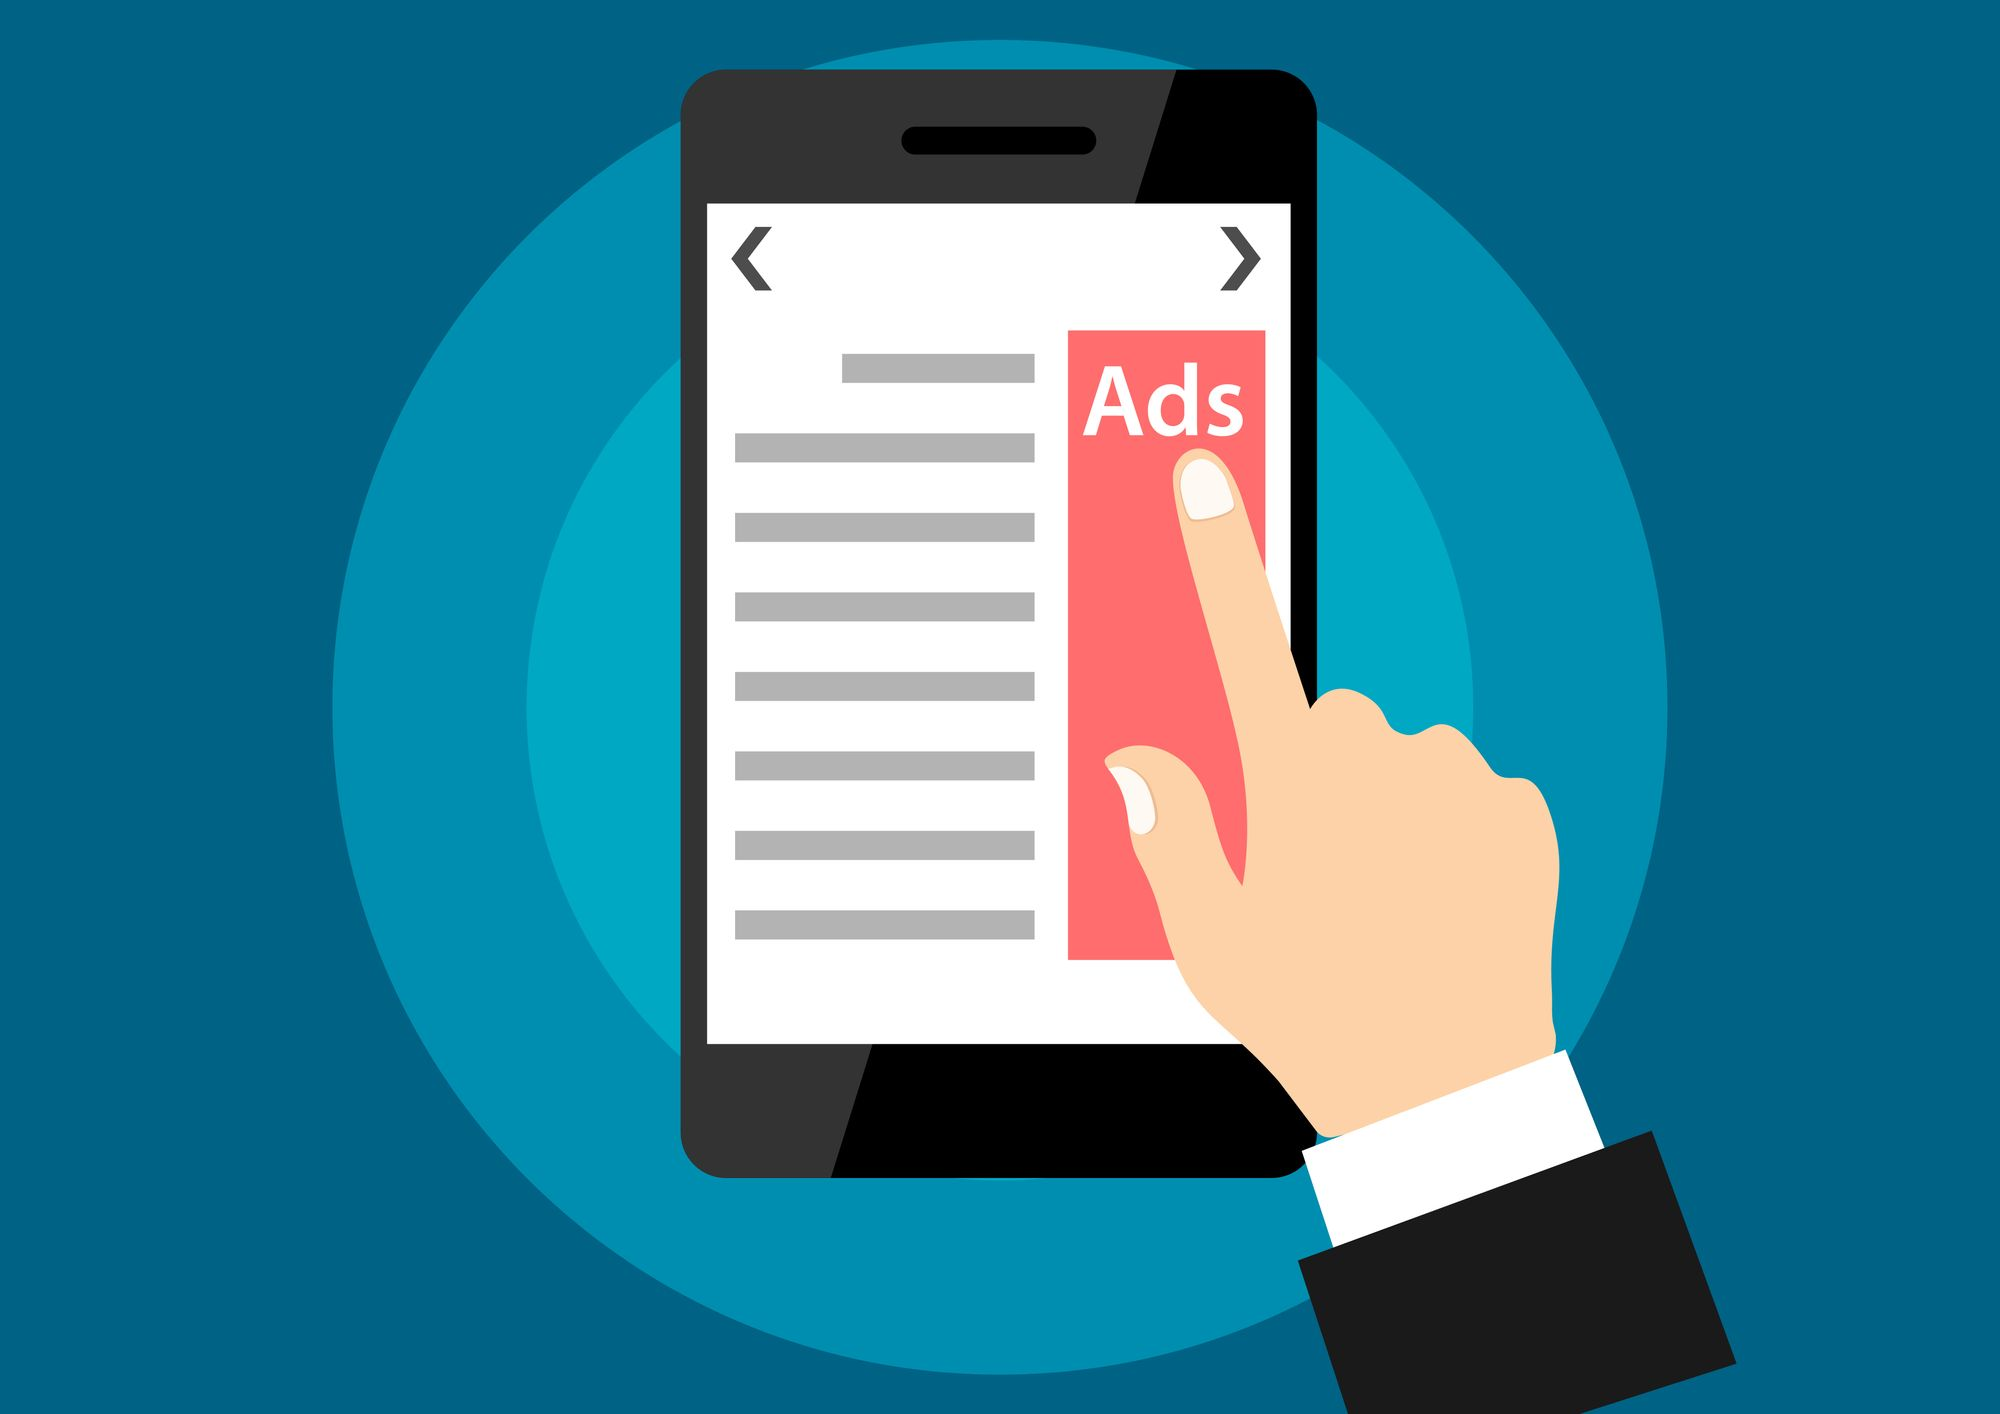 How to Use Google Adwords for Digital Marketing?